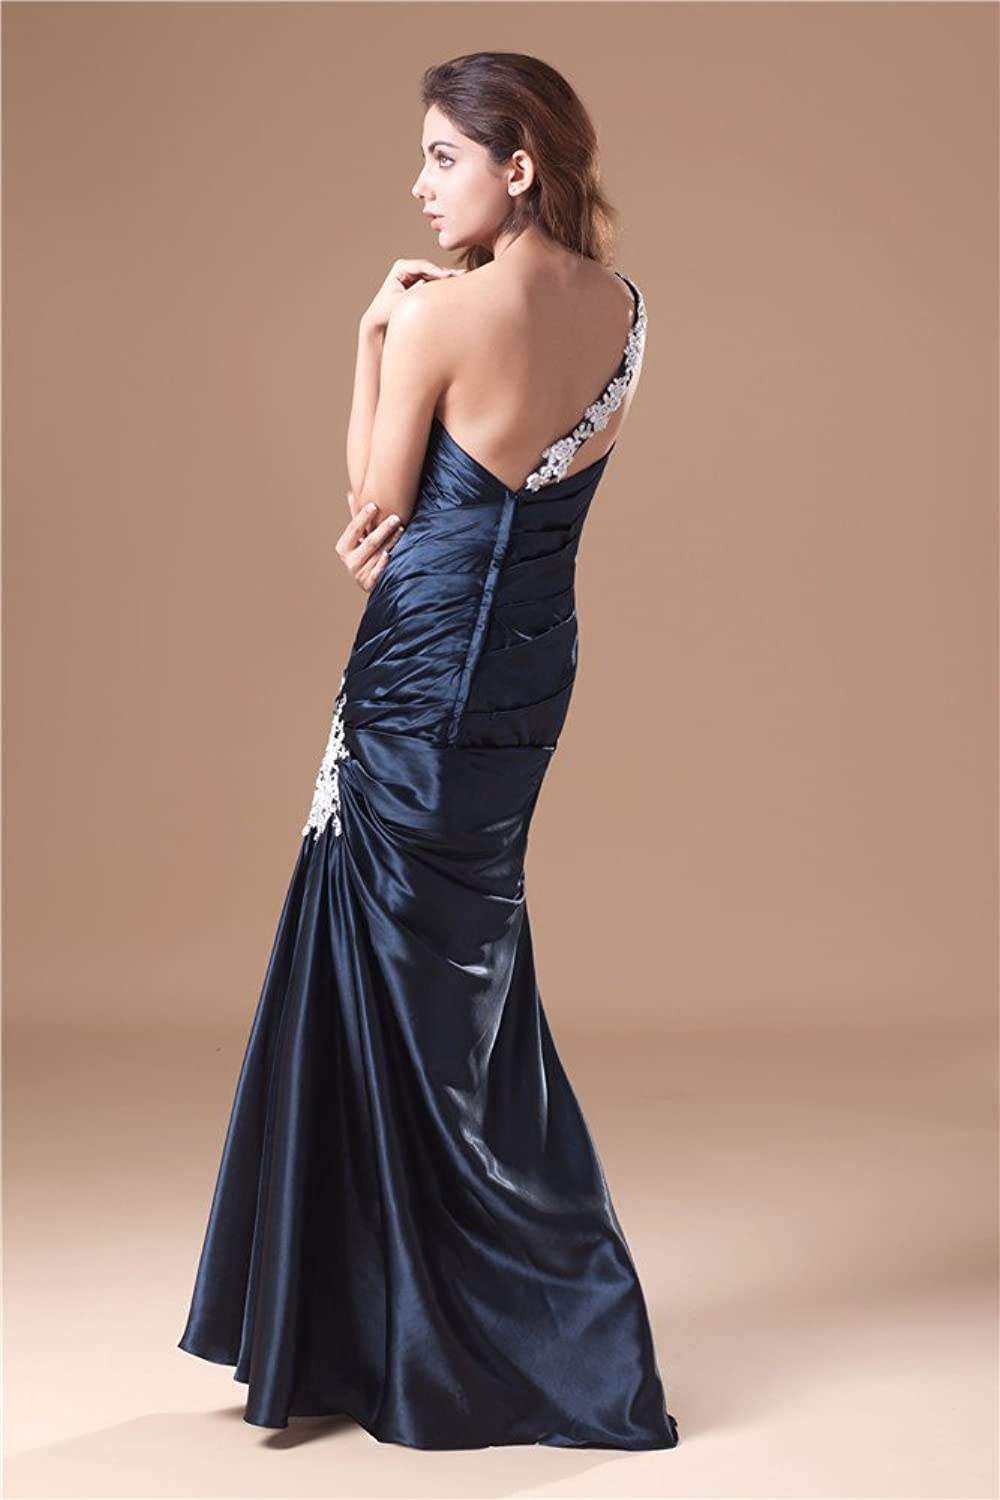 Jspoir Melodiz Women's Brilliant One Shoulder Satin Slim Line Gown